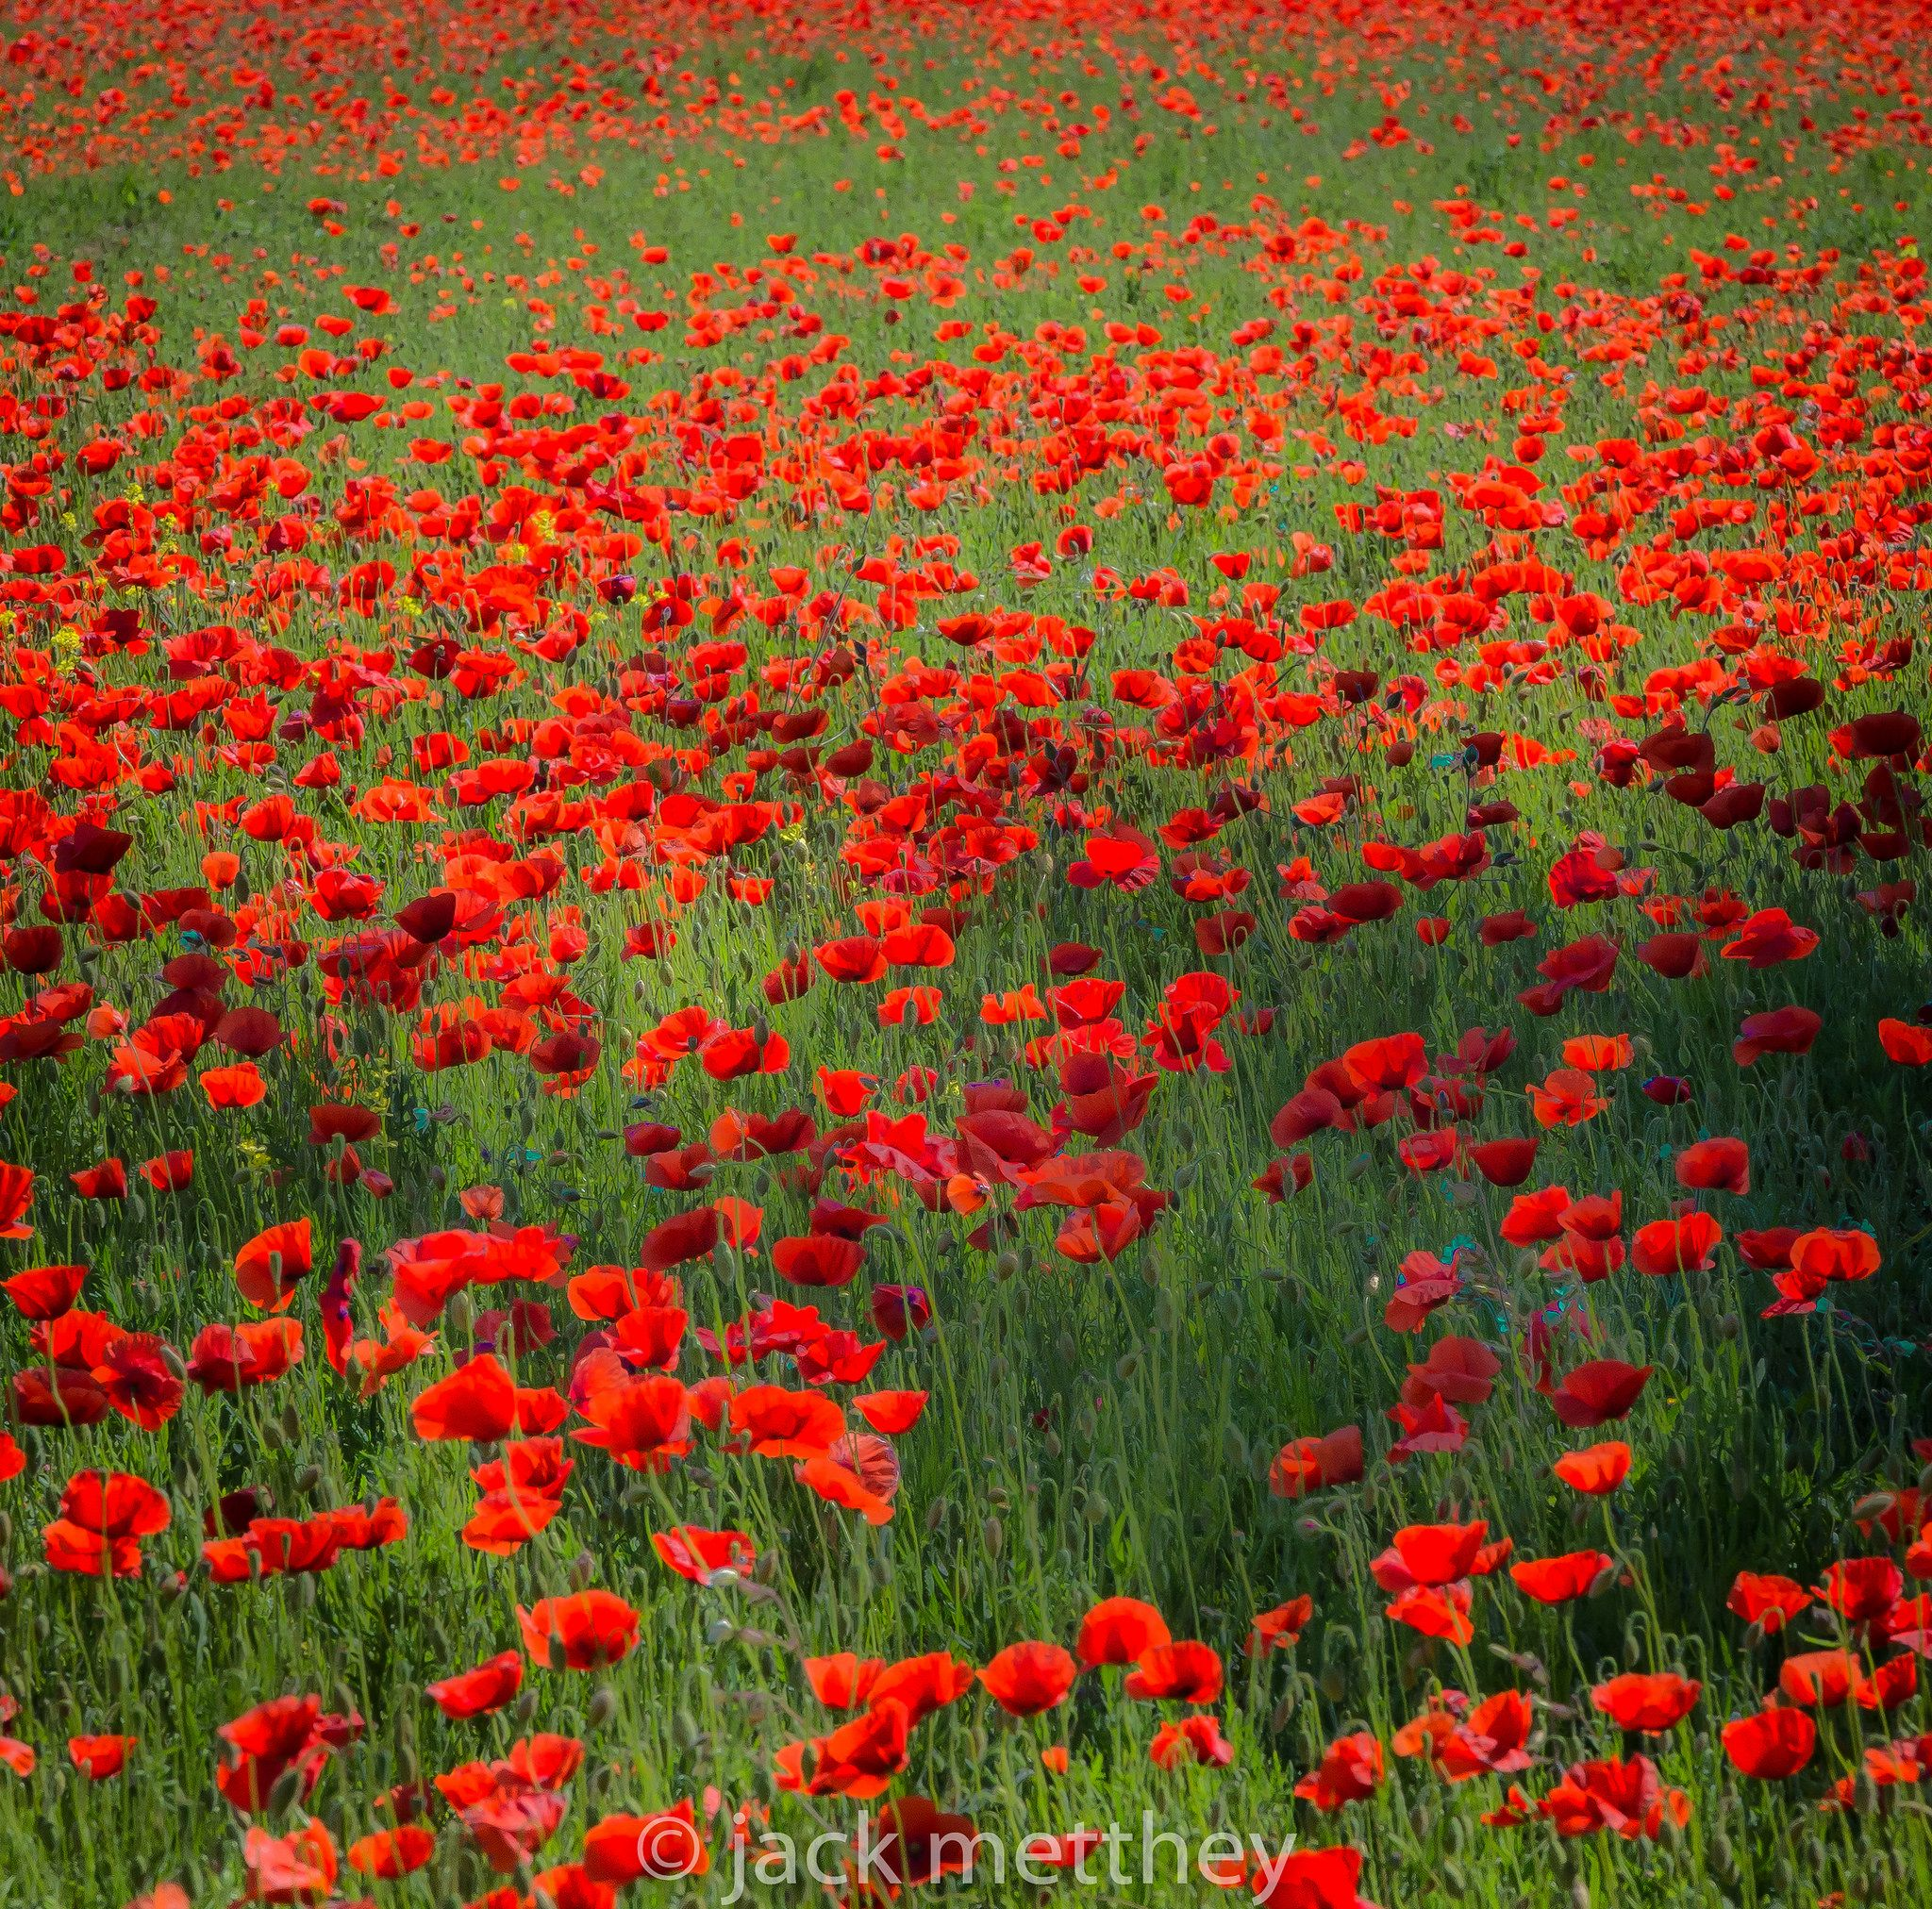 Https Flic Kr P Vurpzj Poppy Field In Ile De Re Tribute To Claude Monet Mohn Rot Mohnblume Mohn